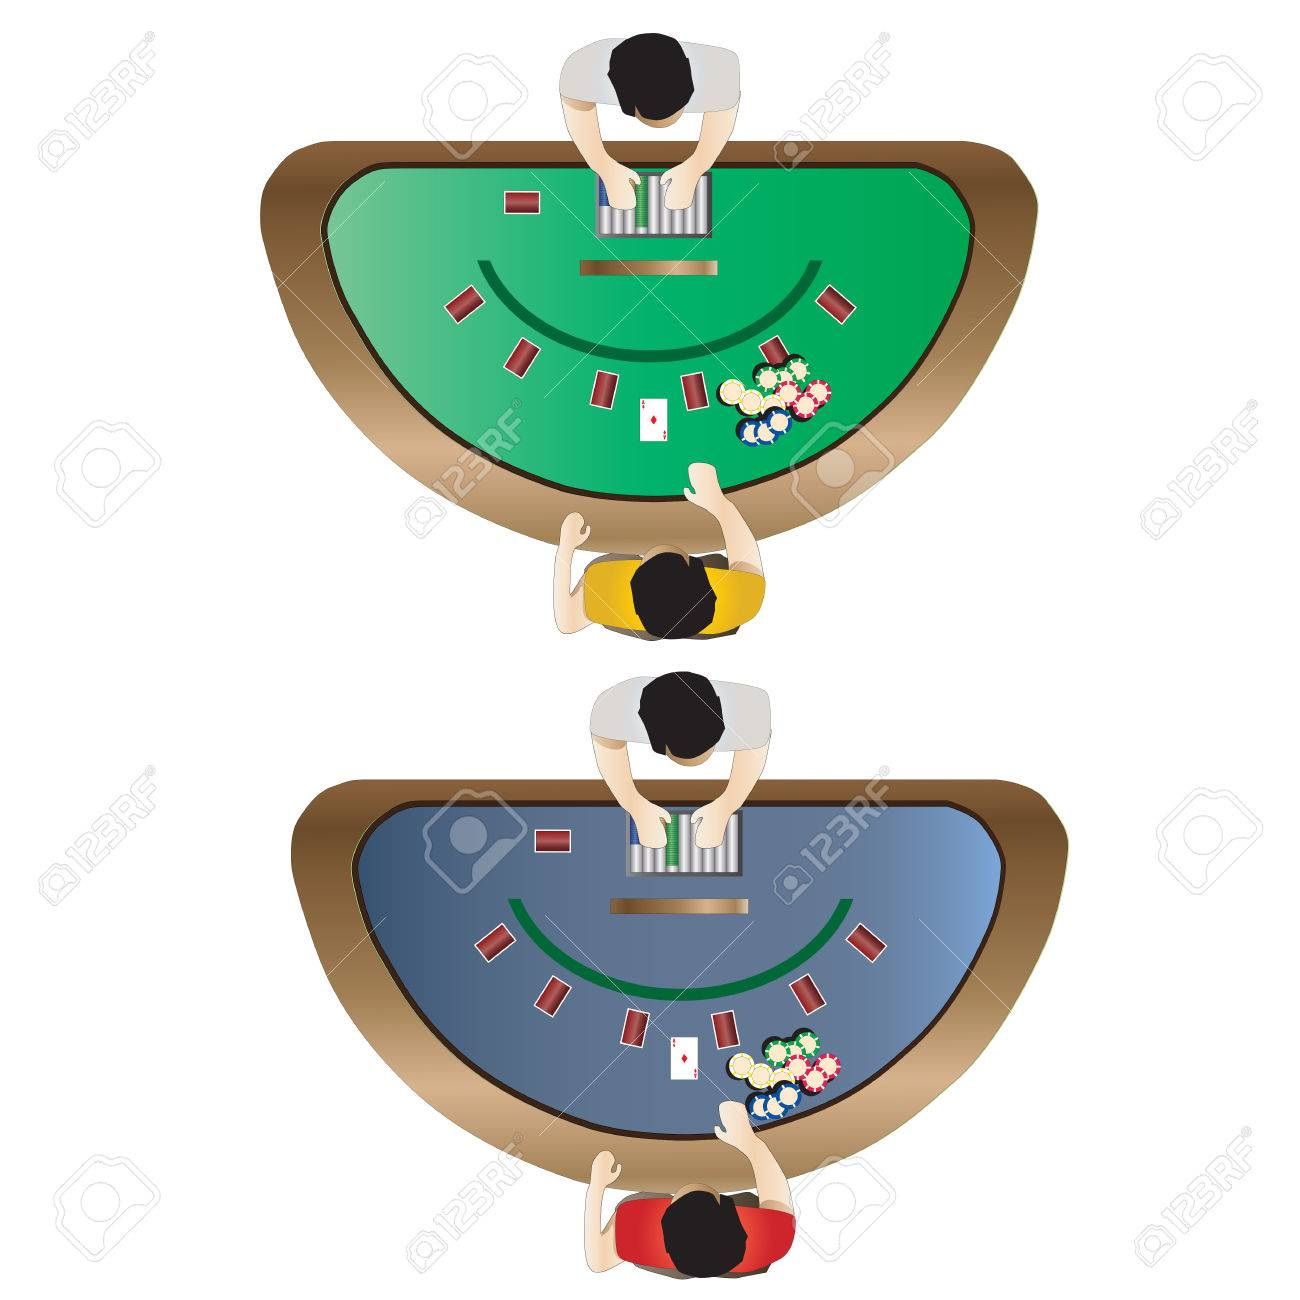 Blackjack table top view - Casino Furniture Blackjack Table Top View Set 3 For Interior Vector Illustration Stock Vector